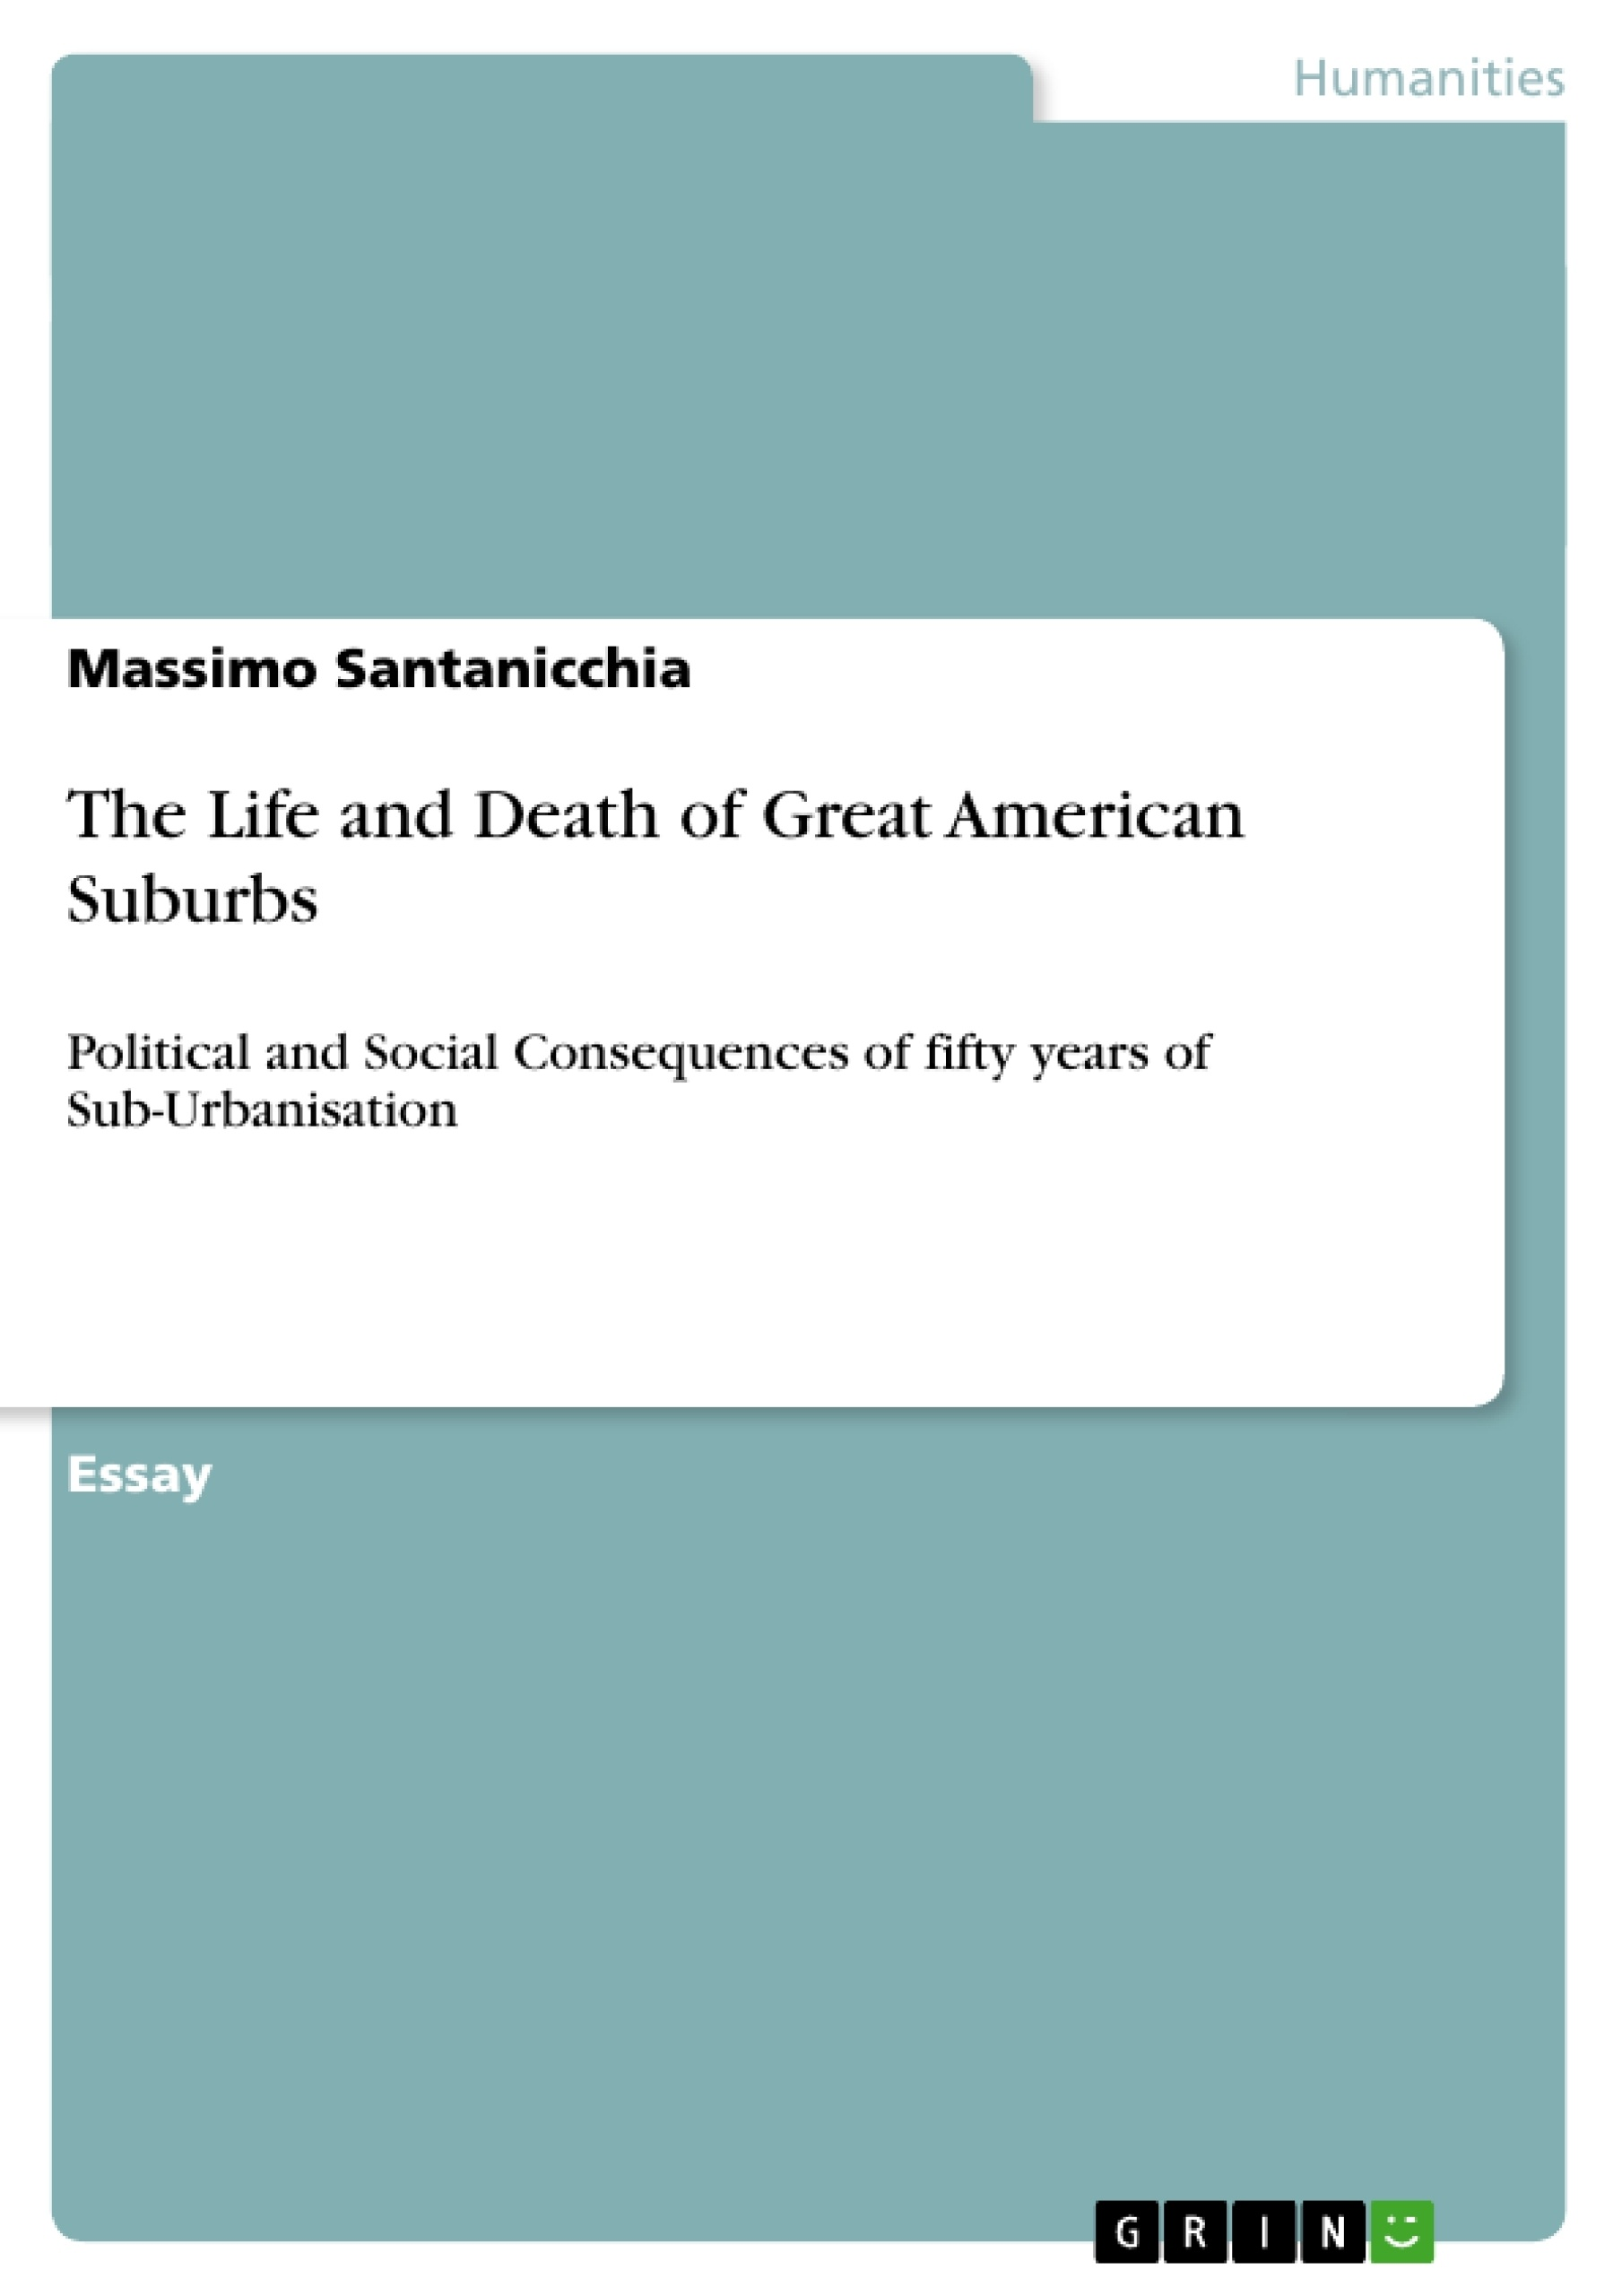 Title: The Life and Death of Great American Suburbs